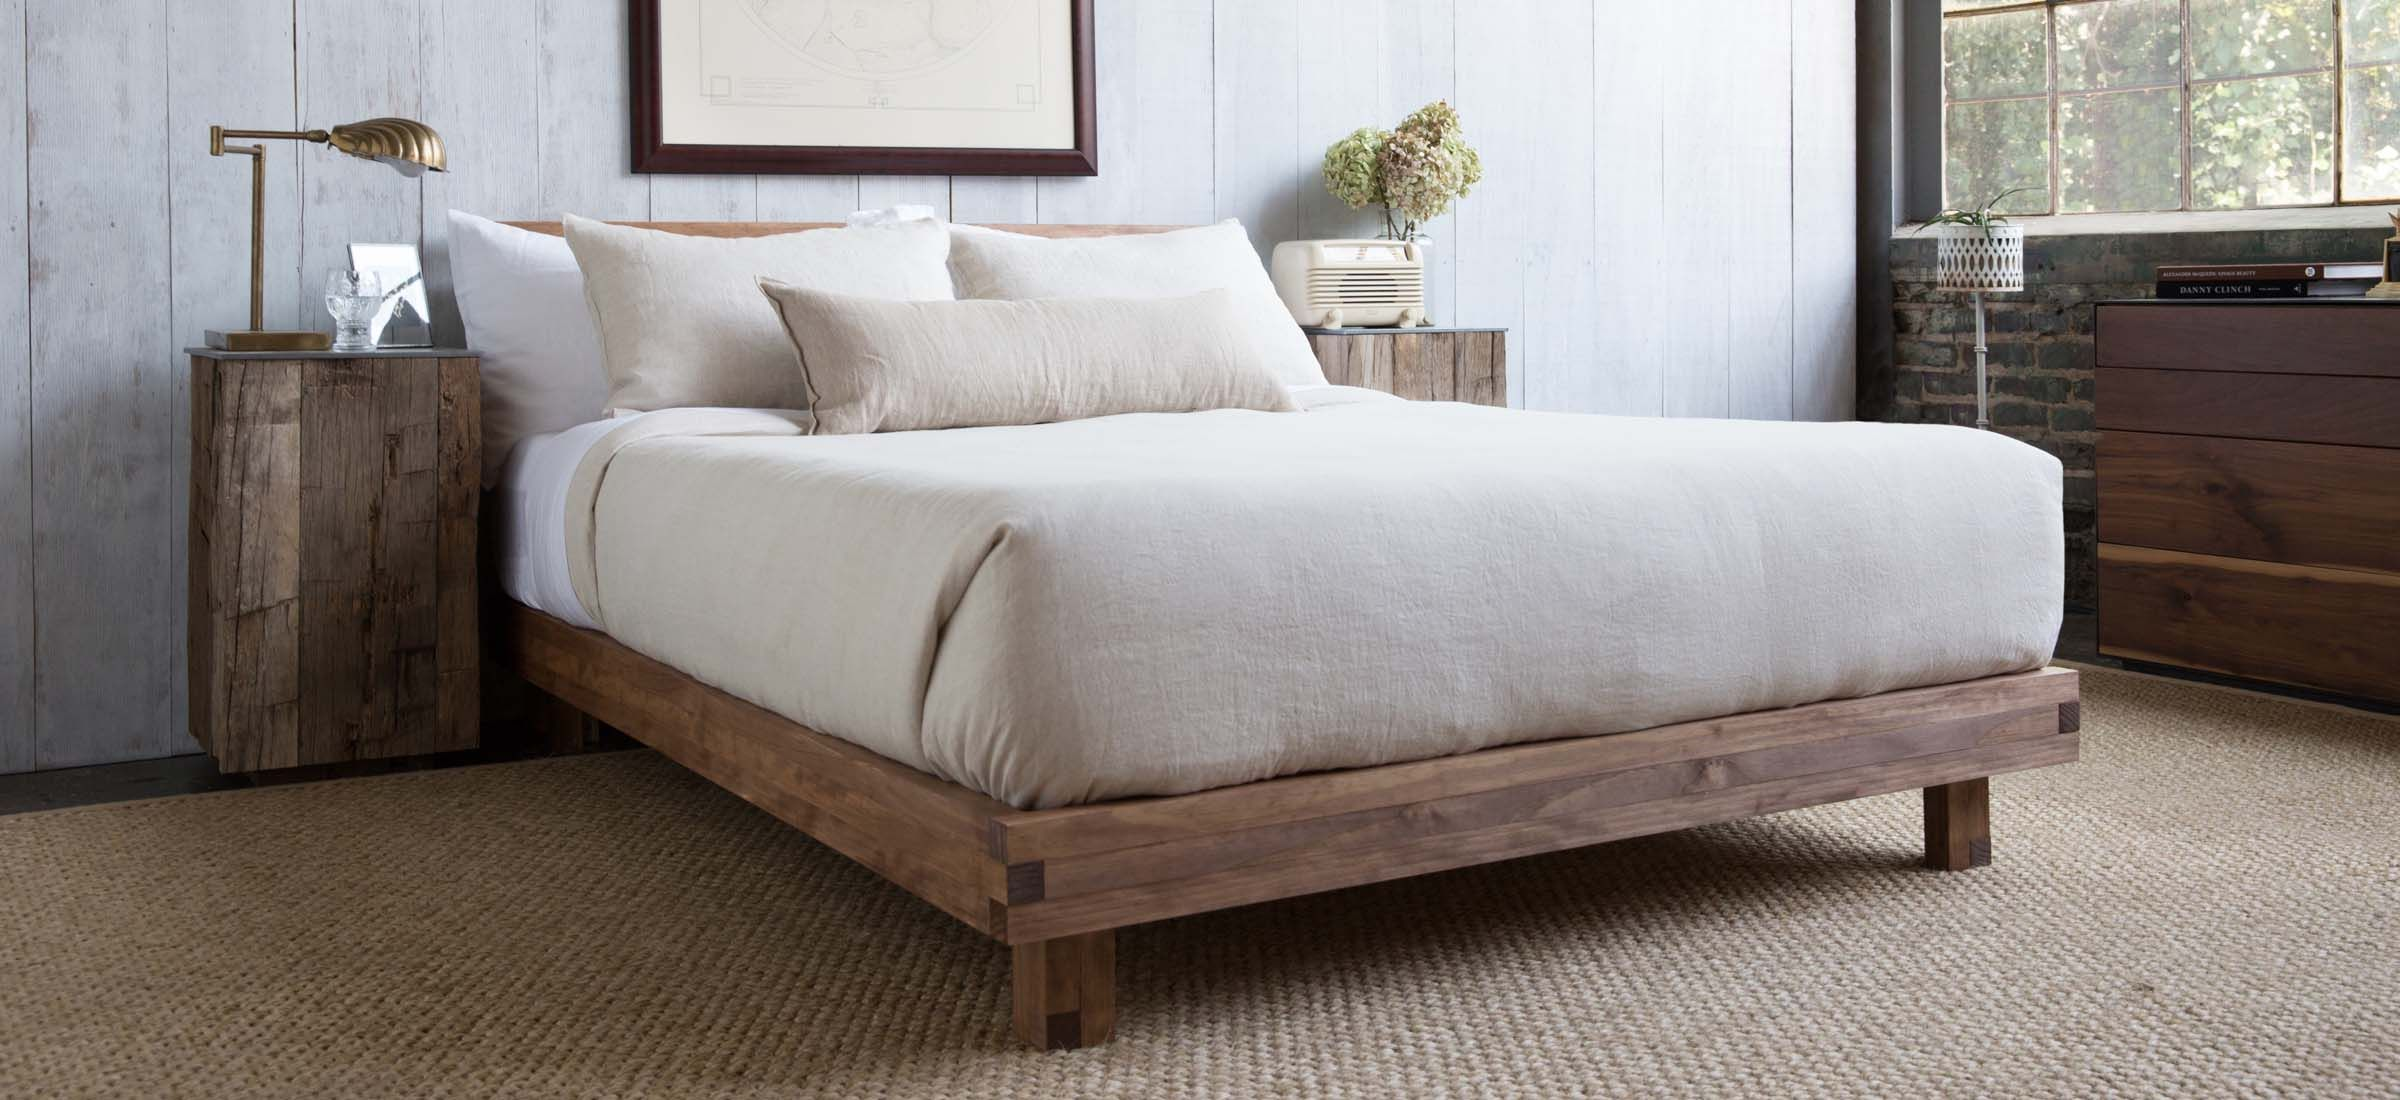 Loblolly Mattress With Dyi Bed Frame